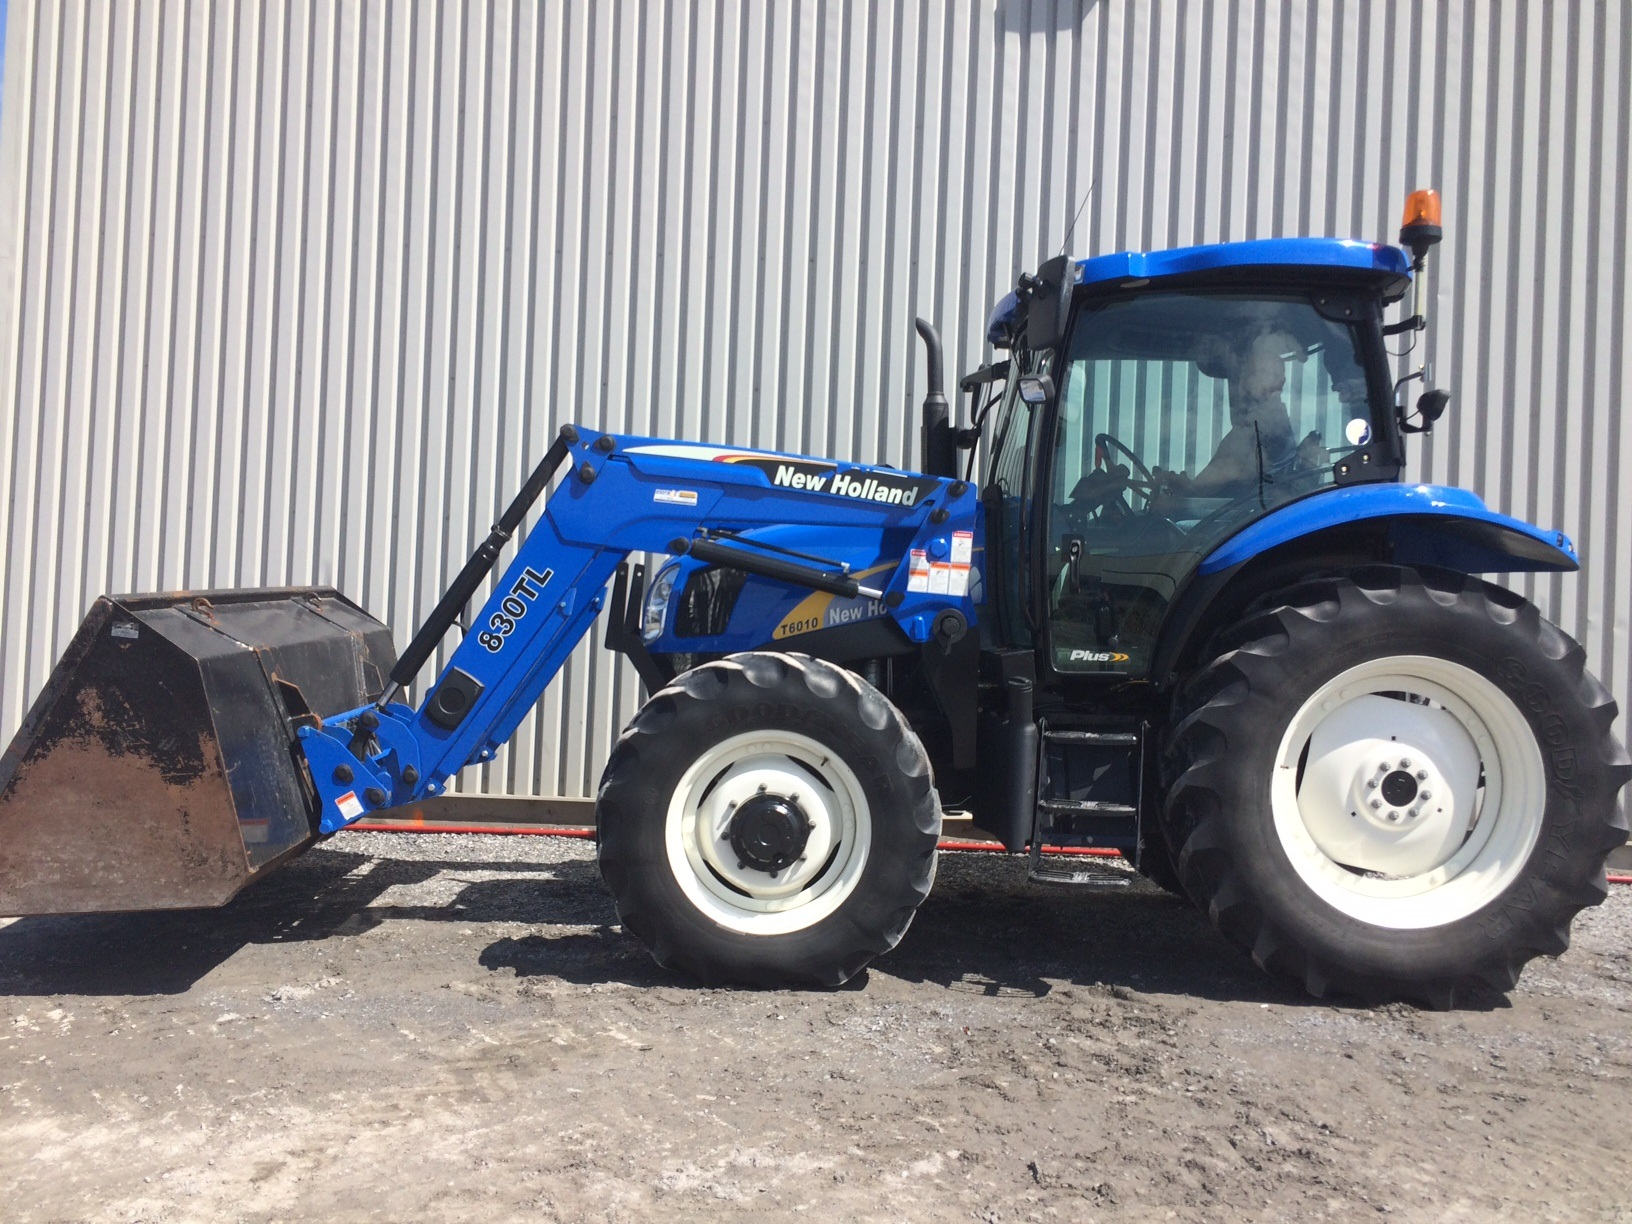 Tracteur New Holland 6010